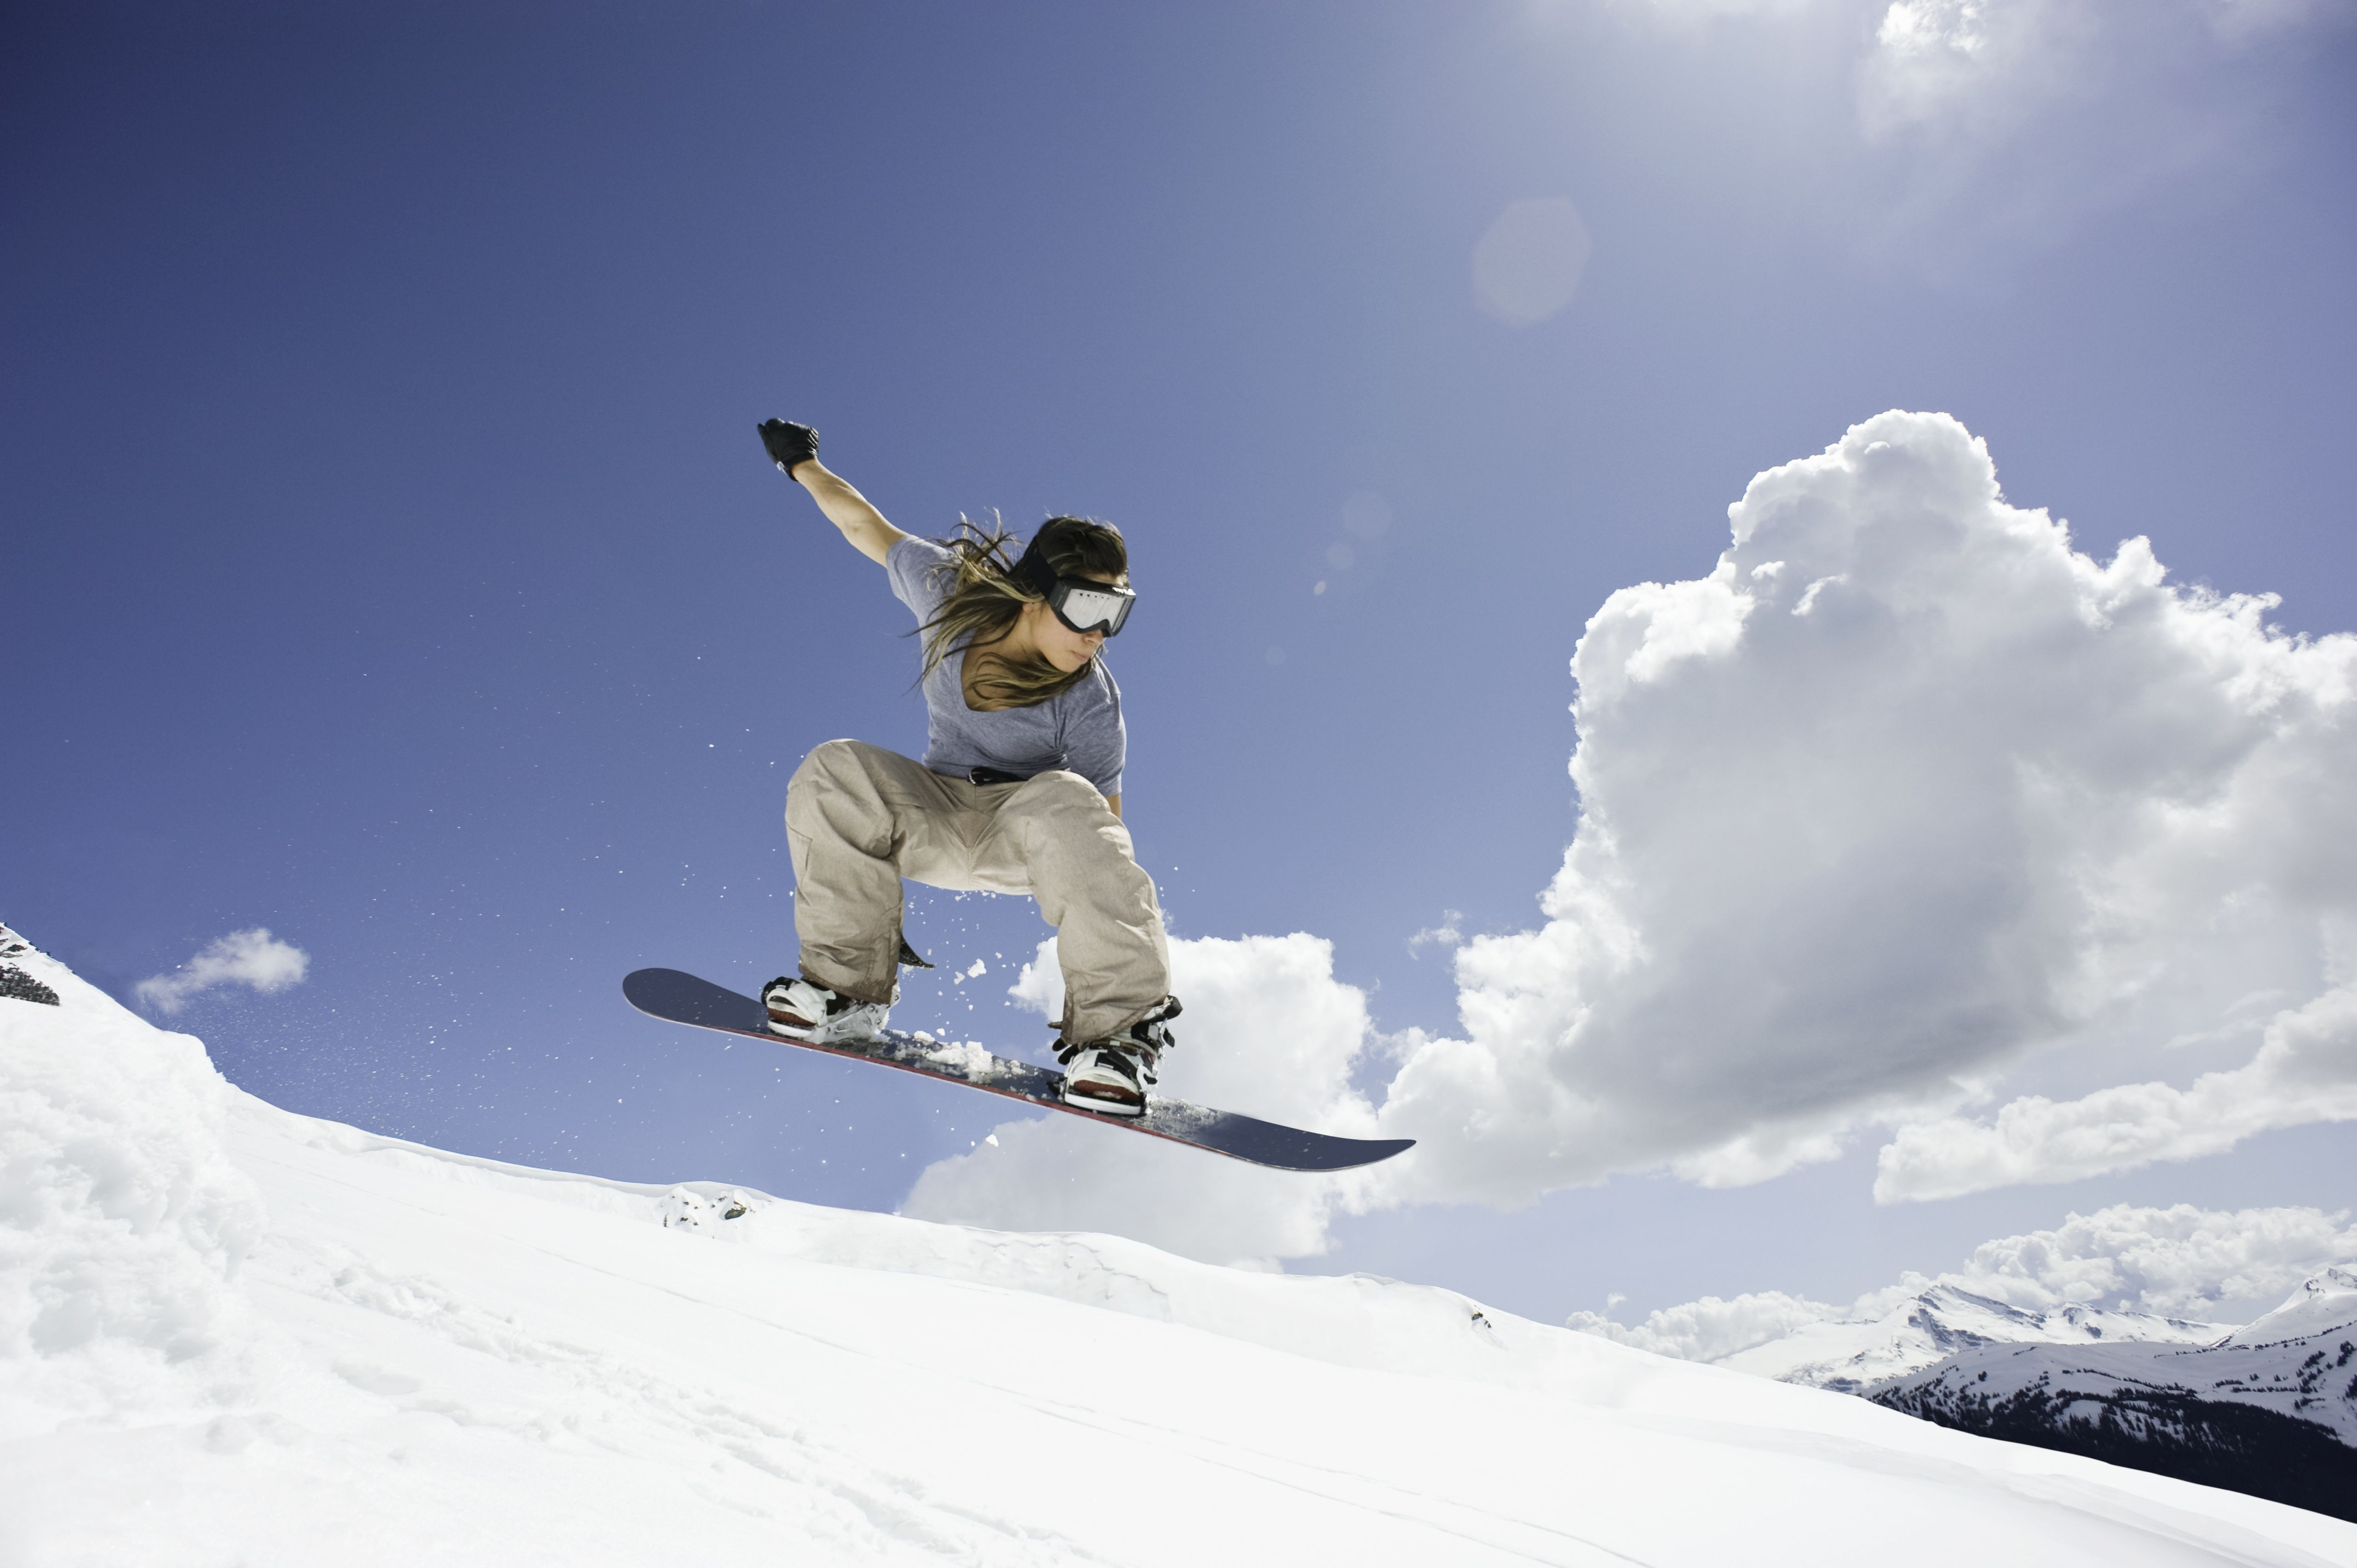 Snowboarding Lessons Equipment And Advice